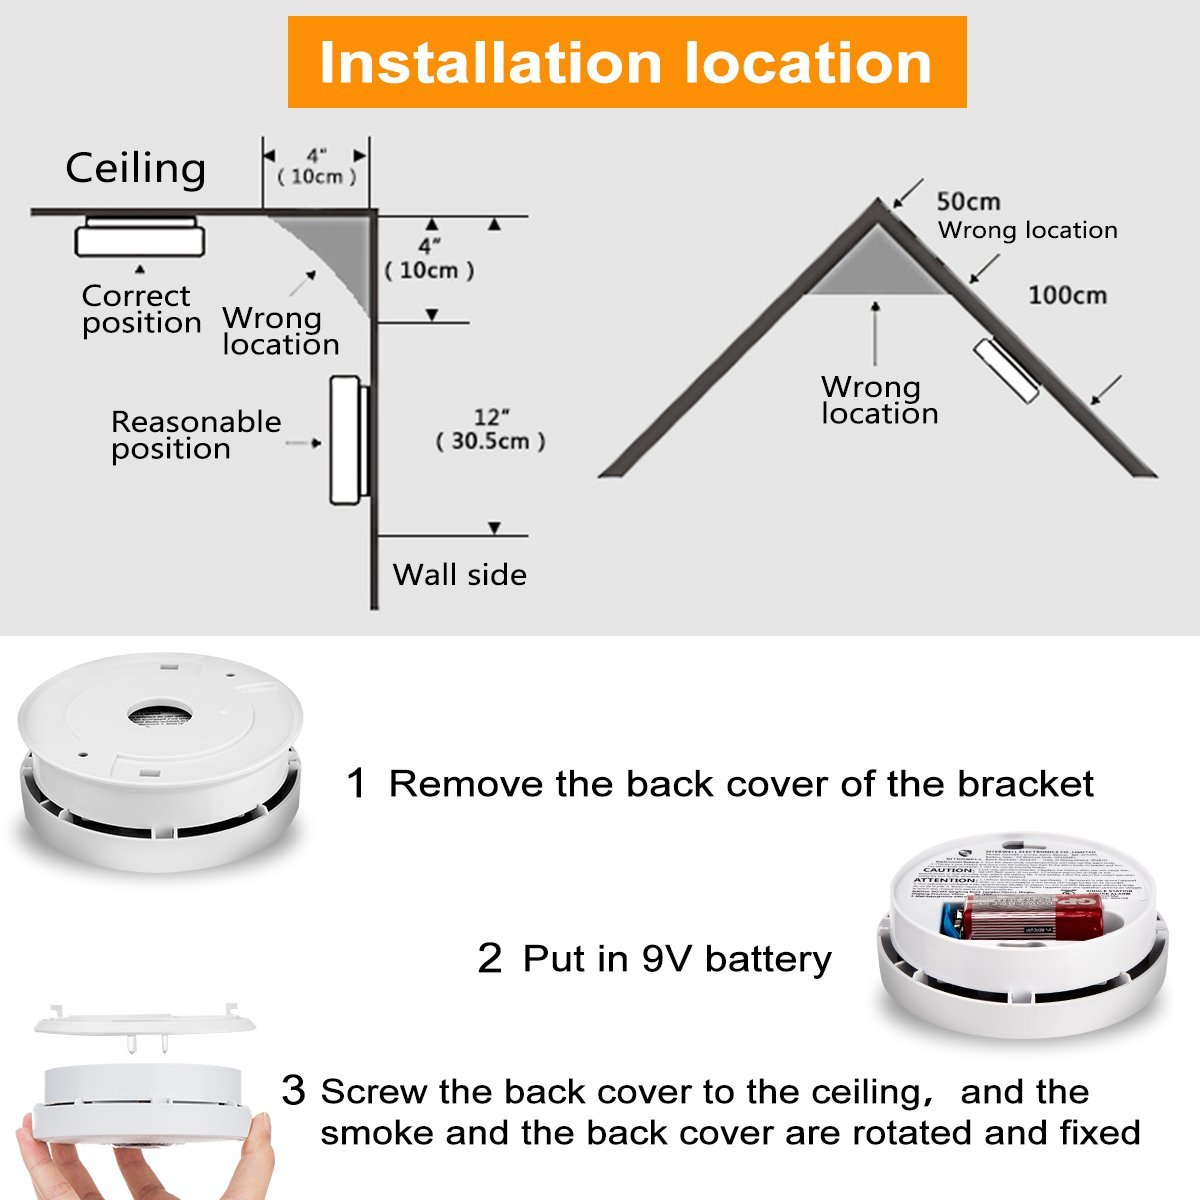 Smoke Alarm Fire Alarm Smoke Detector with Test Button 9 Volt Battery-Operated Photoelectric Smoke Alarms for Bedroom,Kitchen,Corridor,Bathroom and Hotel,10 Years 2 Pack Smoke Alarm with UL Listed by Askont (Image #5)